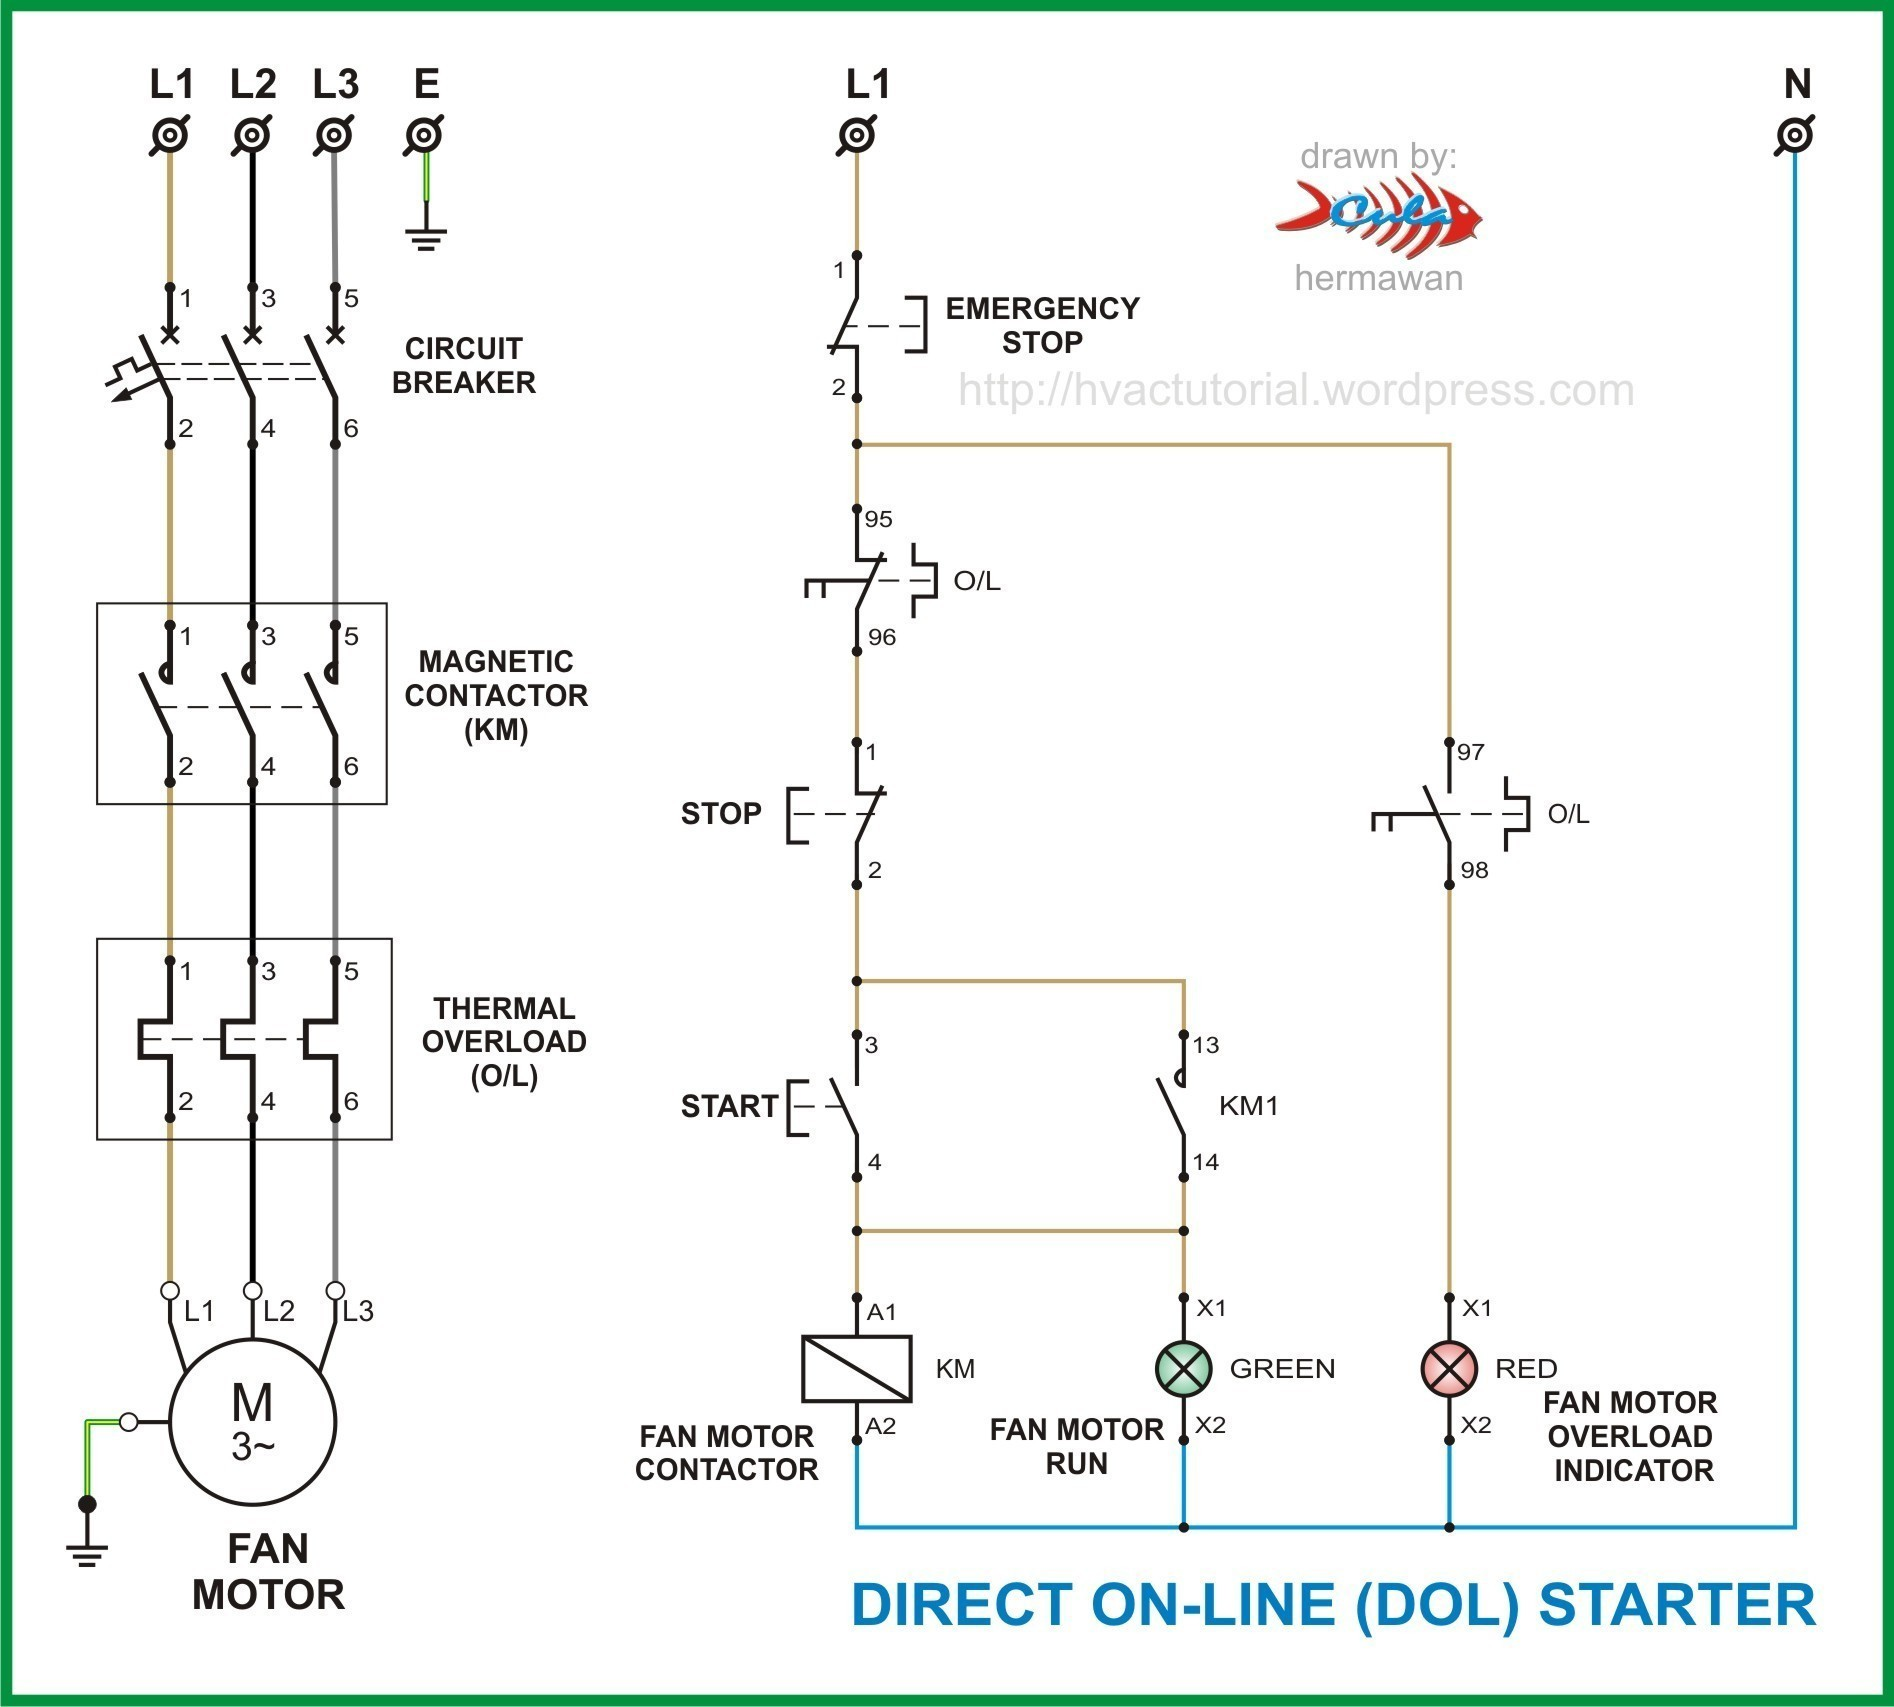 Dol Starter Wiring Diagram Pdf Save Diagrams Sample Archives Page 3 43 Wheathill Co